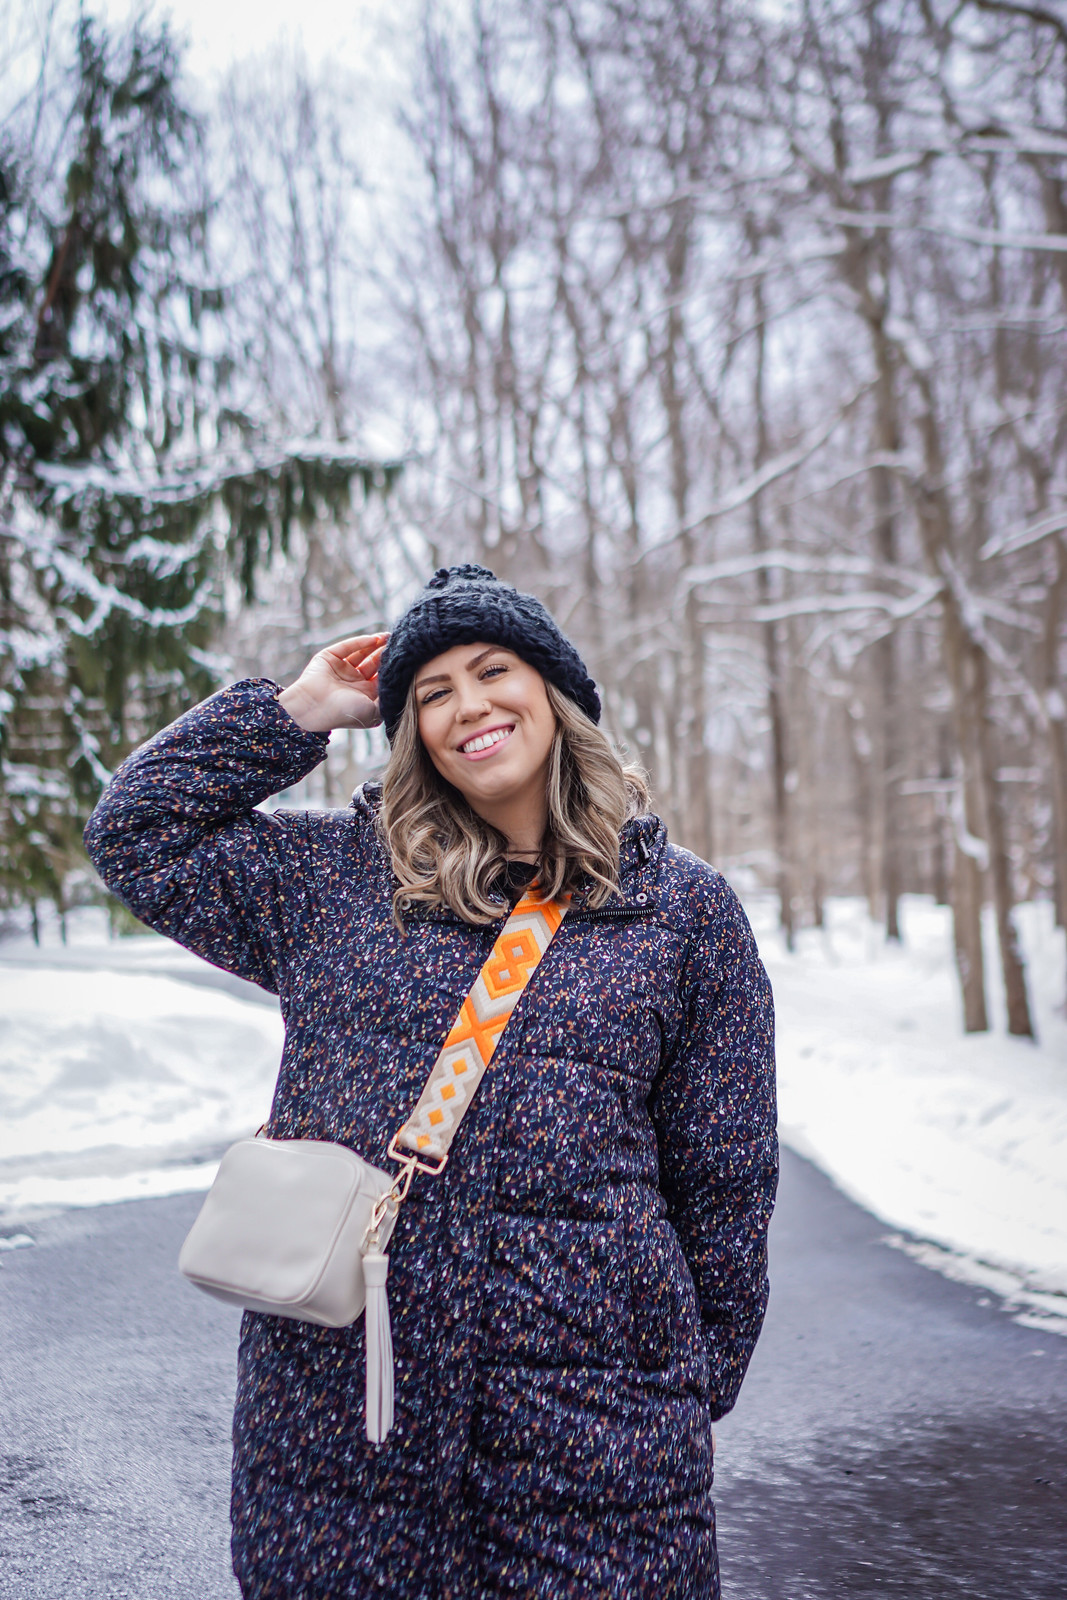 Ahdorned Bags | Winter Outfits Casual | Aesthetic Outfits | Puffer Jacket | Black Beanie | Ahdorned: The Handbag Company You Need to Know About